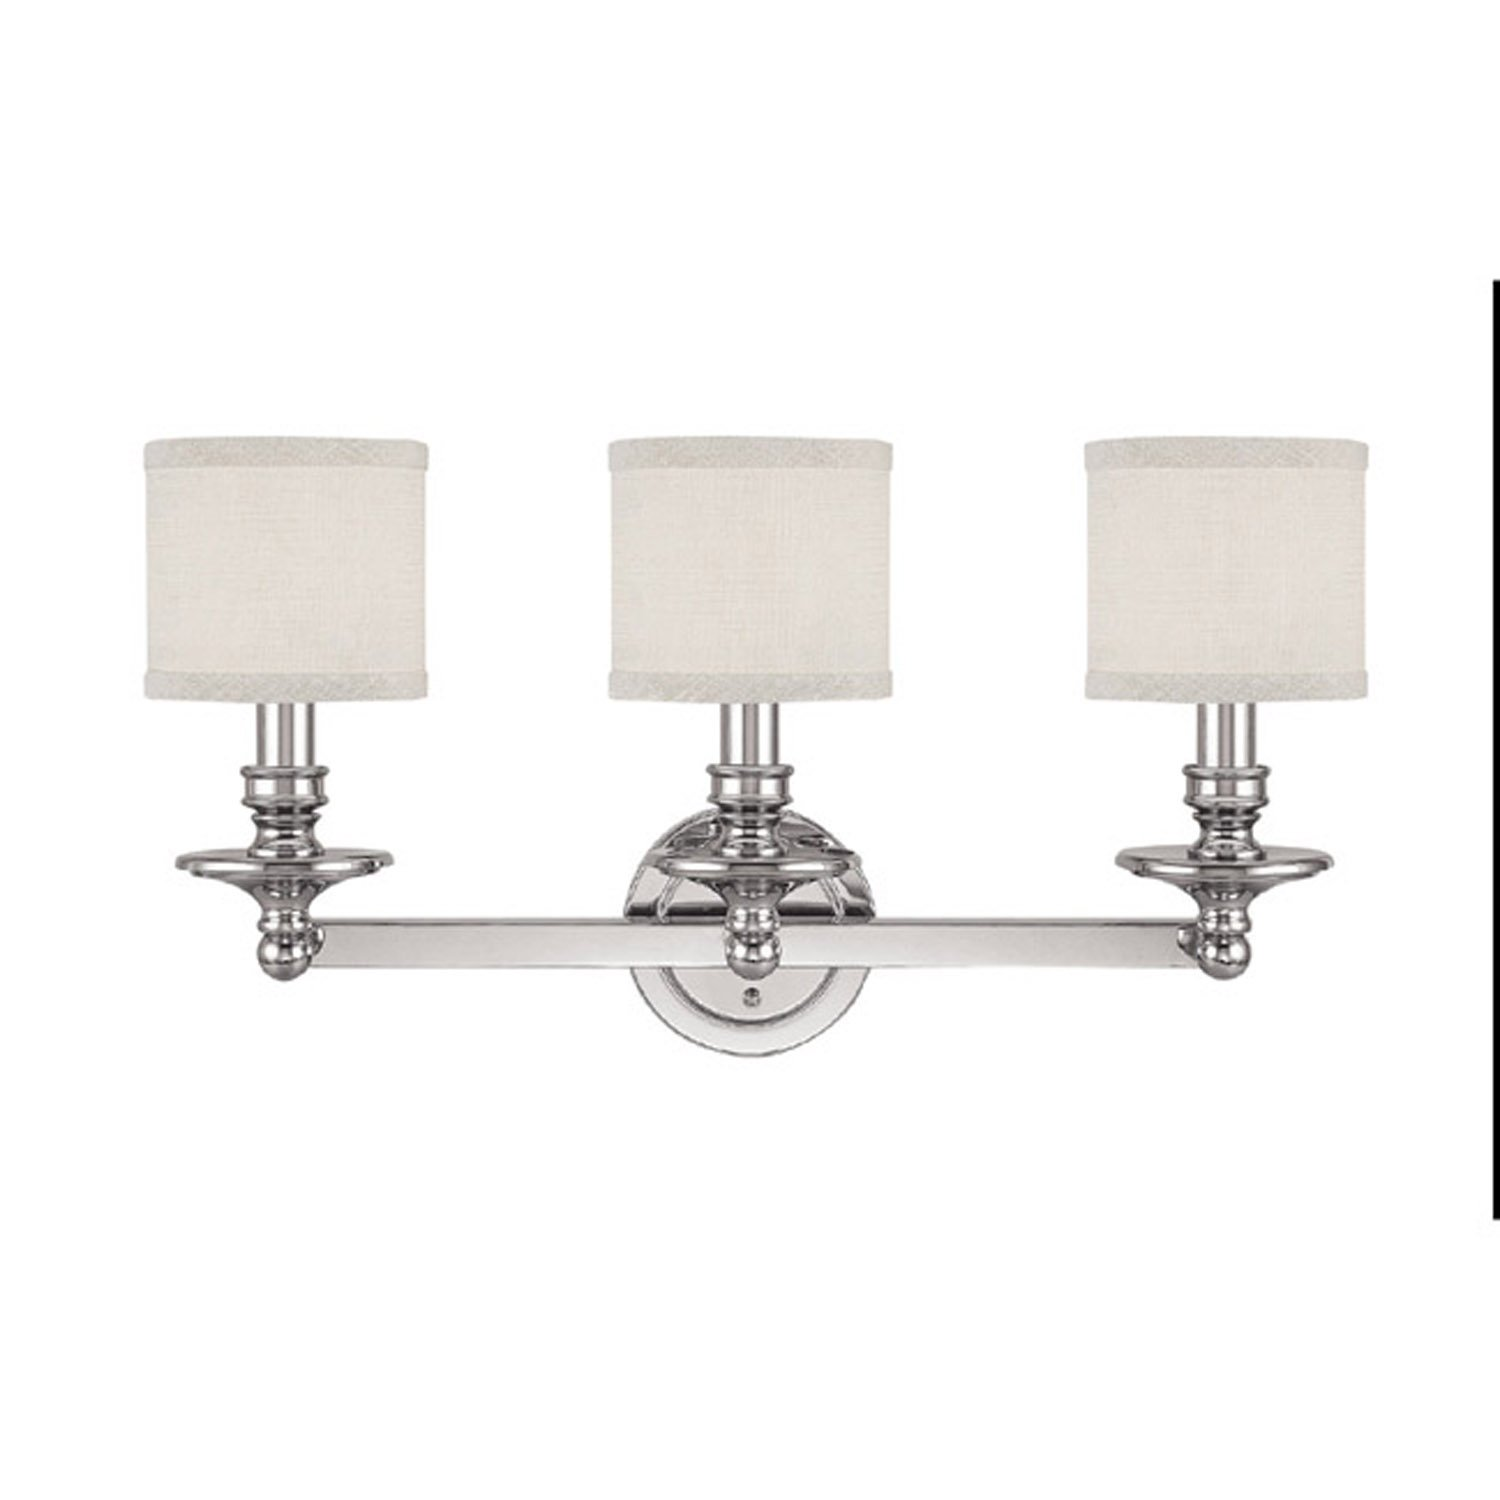 Capital Lighting 1238PN 451 Vanity With White Fabric Shades, Polished Nickel  Finish   Vanity Lighting Fixtures   Amazon.com